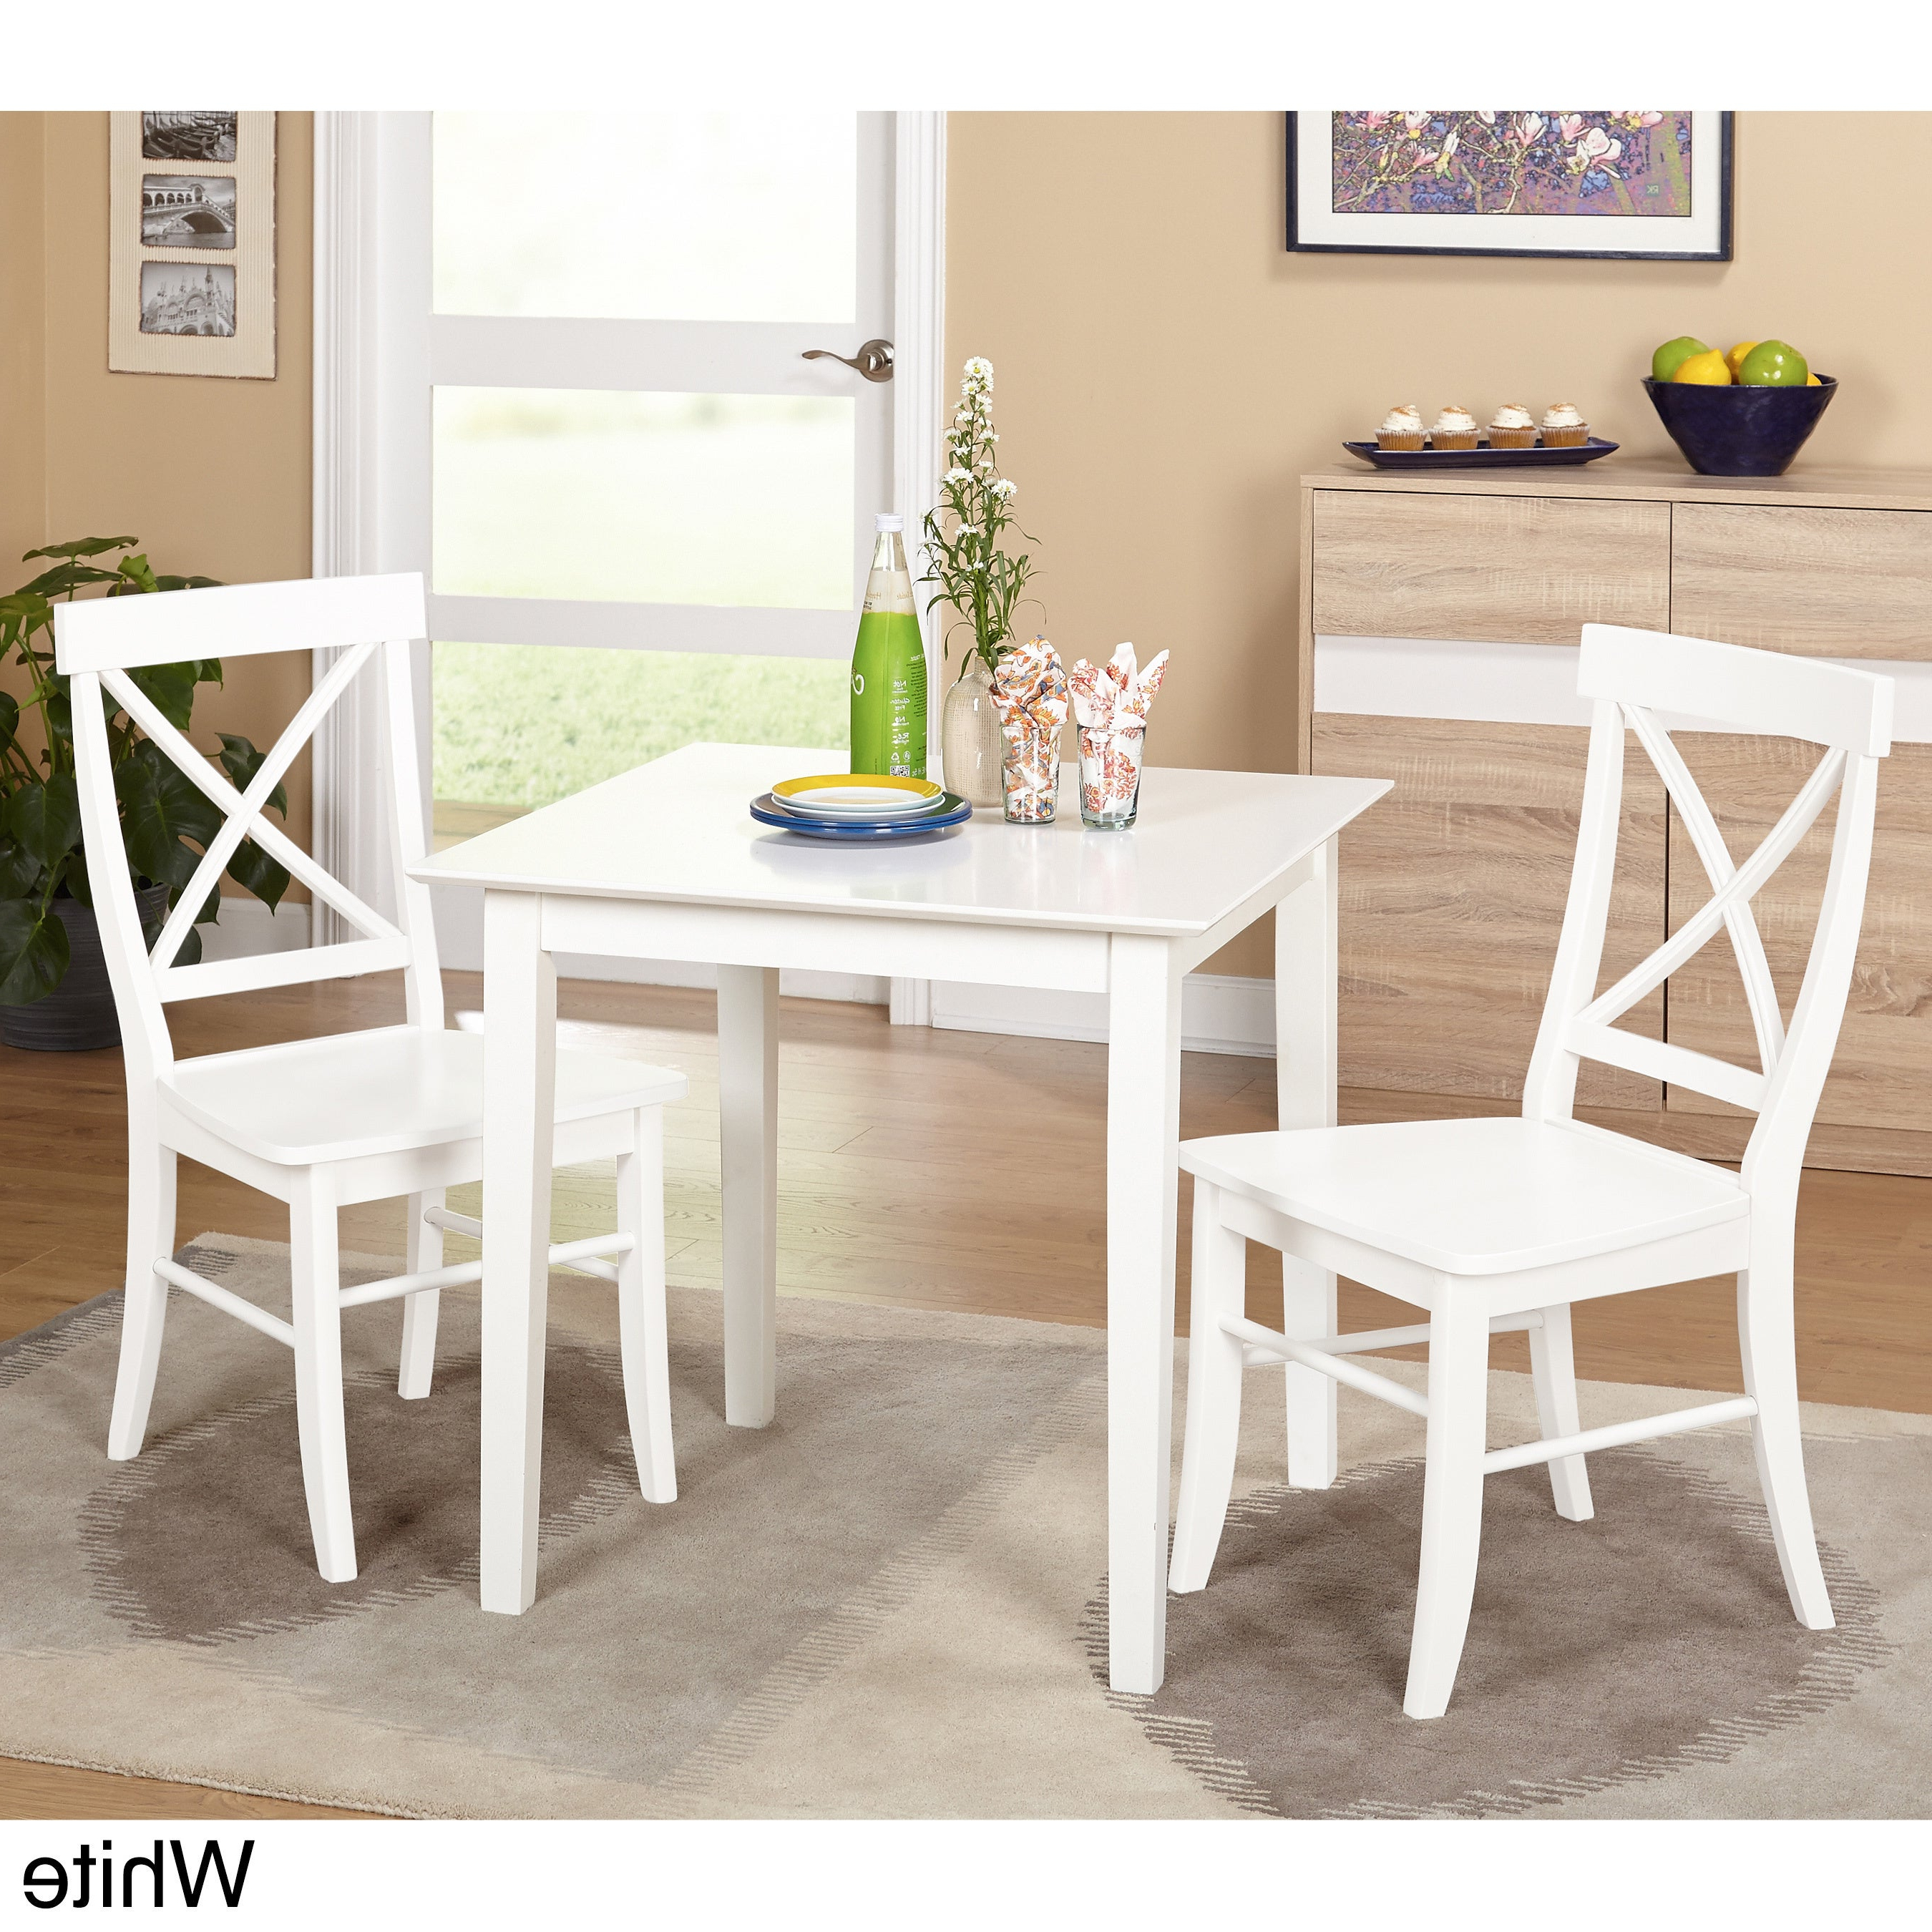 Buy 3 Piece Sets Kitchen & Dining Room Sets Online At Overstock Throughout Well Known Frida 3 Piece Dining Table Sets (View 15 of 20)